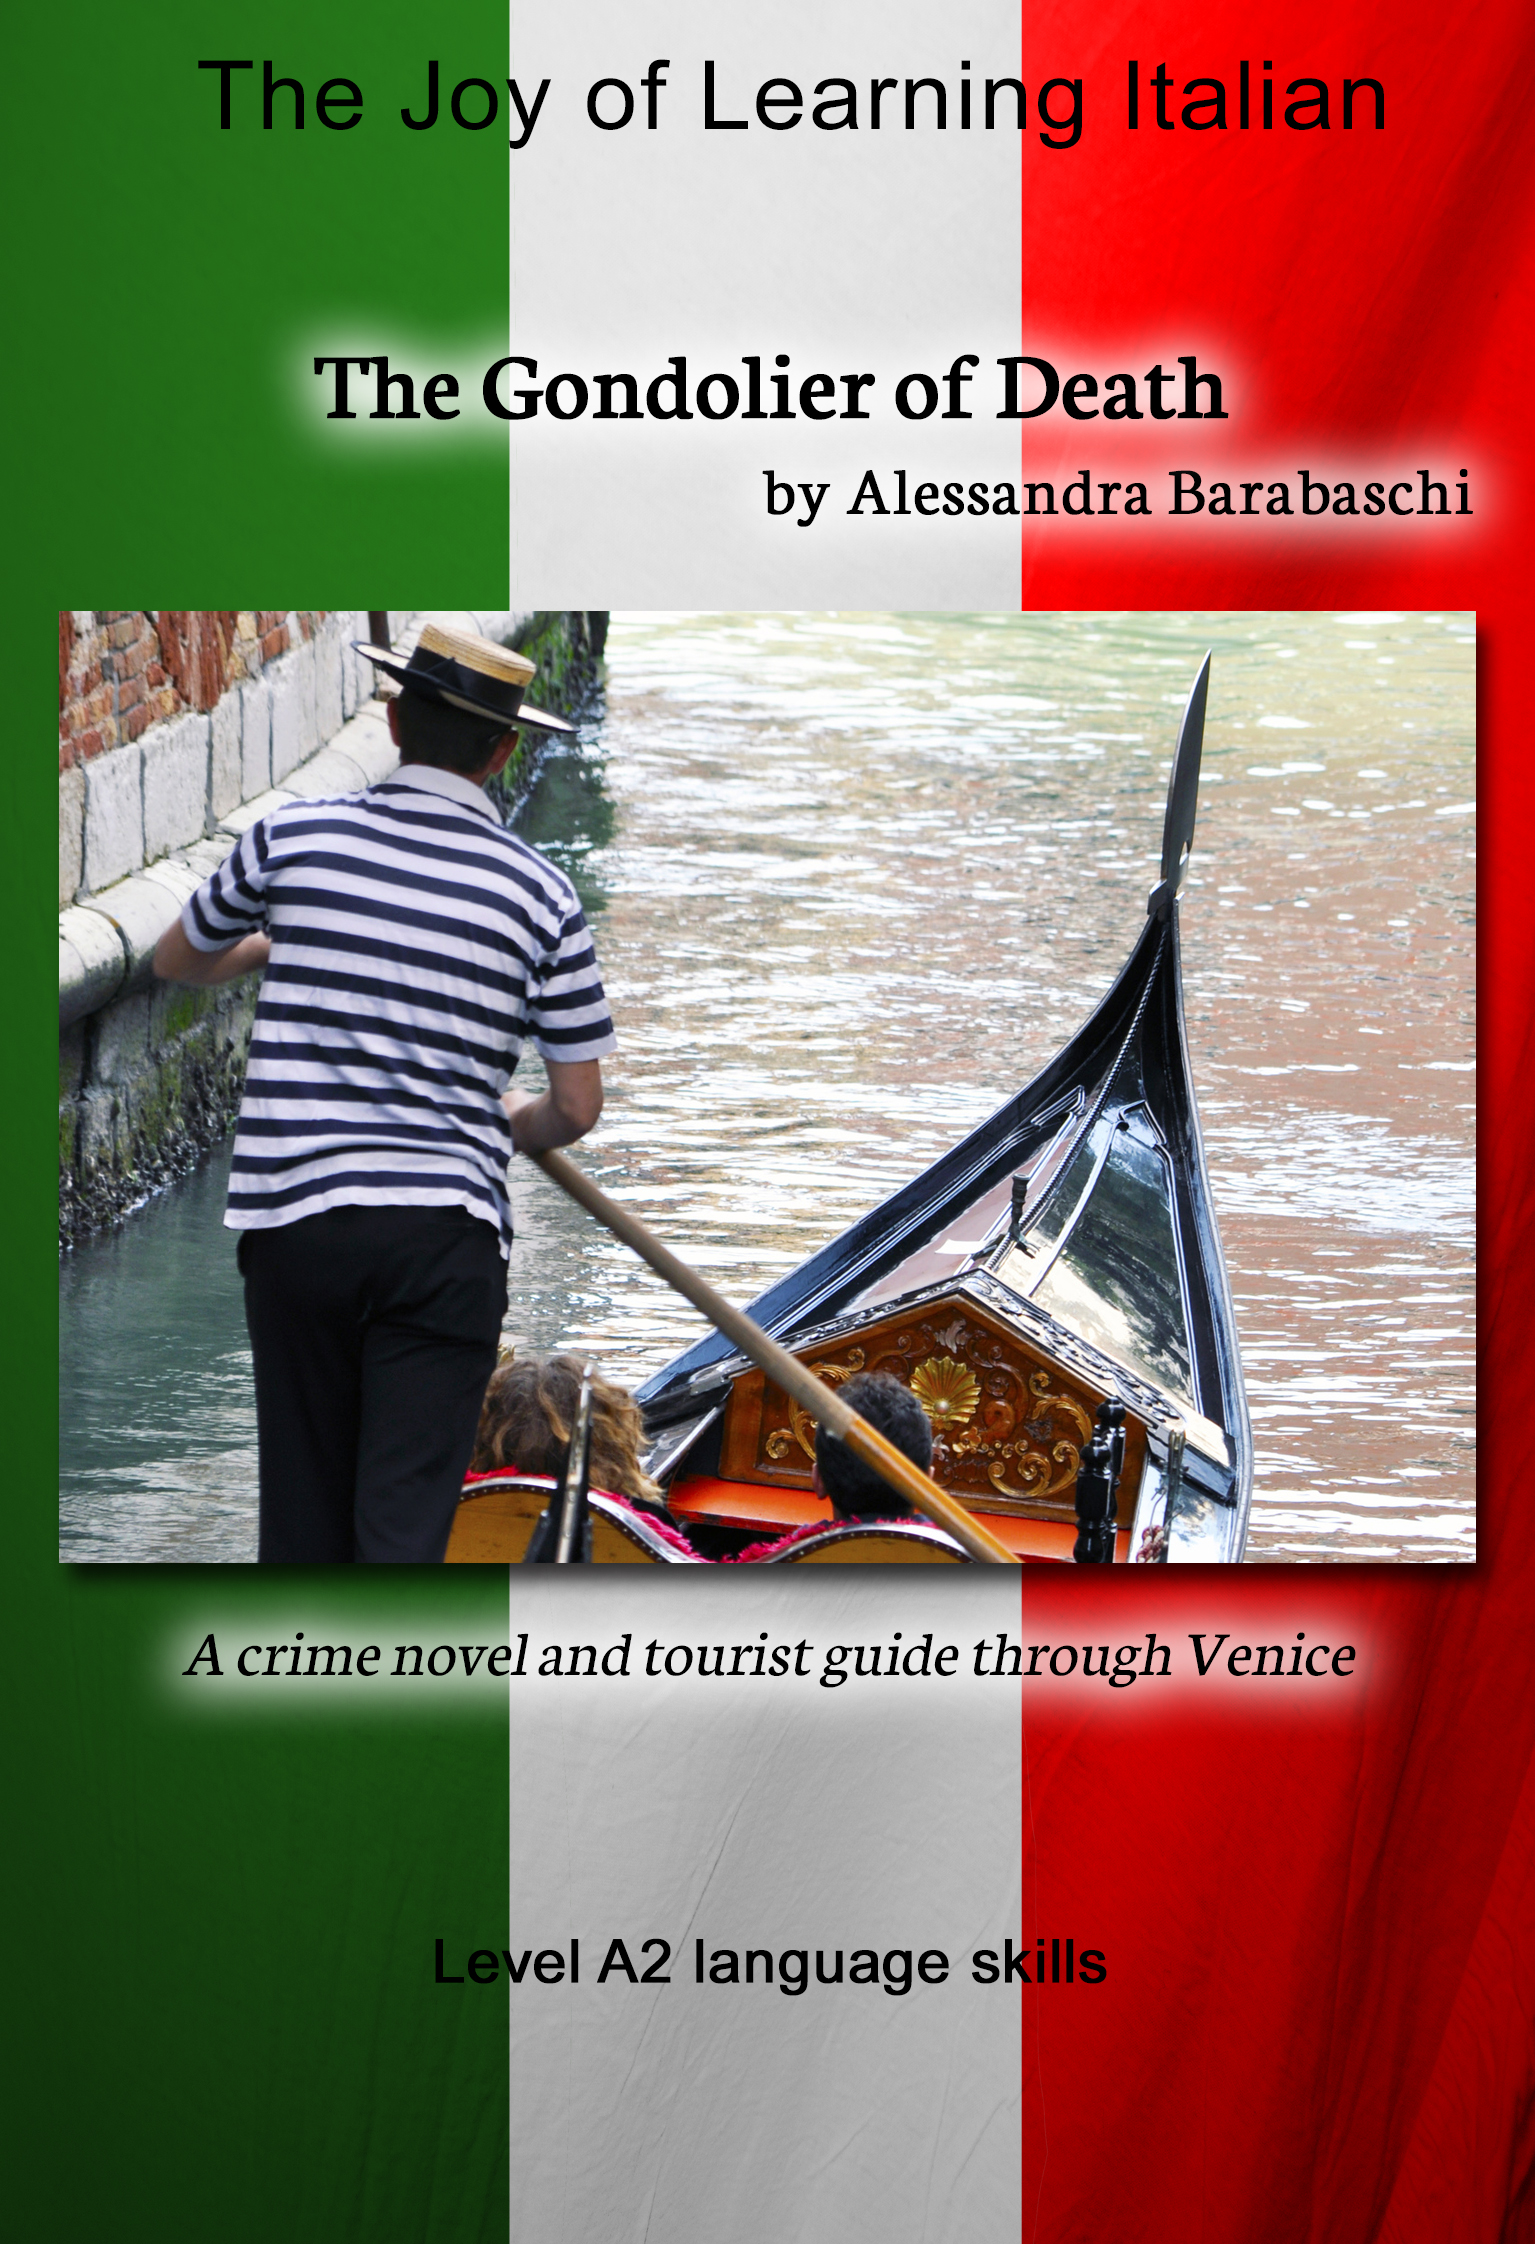 Alessandra Barabaschi The Gondolier of Death - Language Course Italian Level A2 slime the wonderful world of mucus level a2